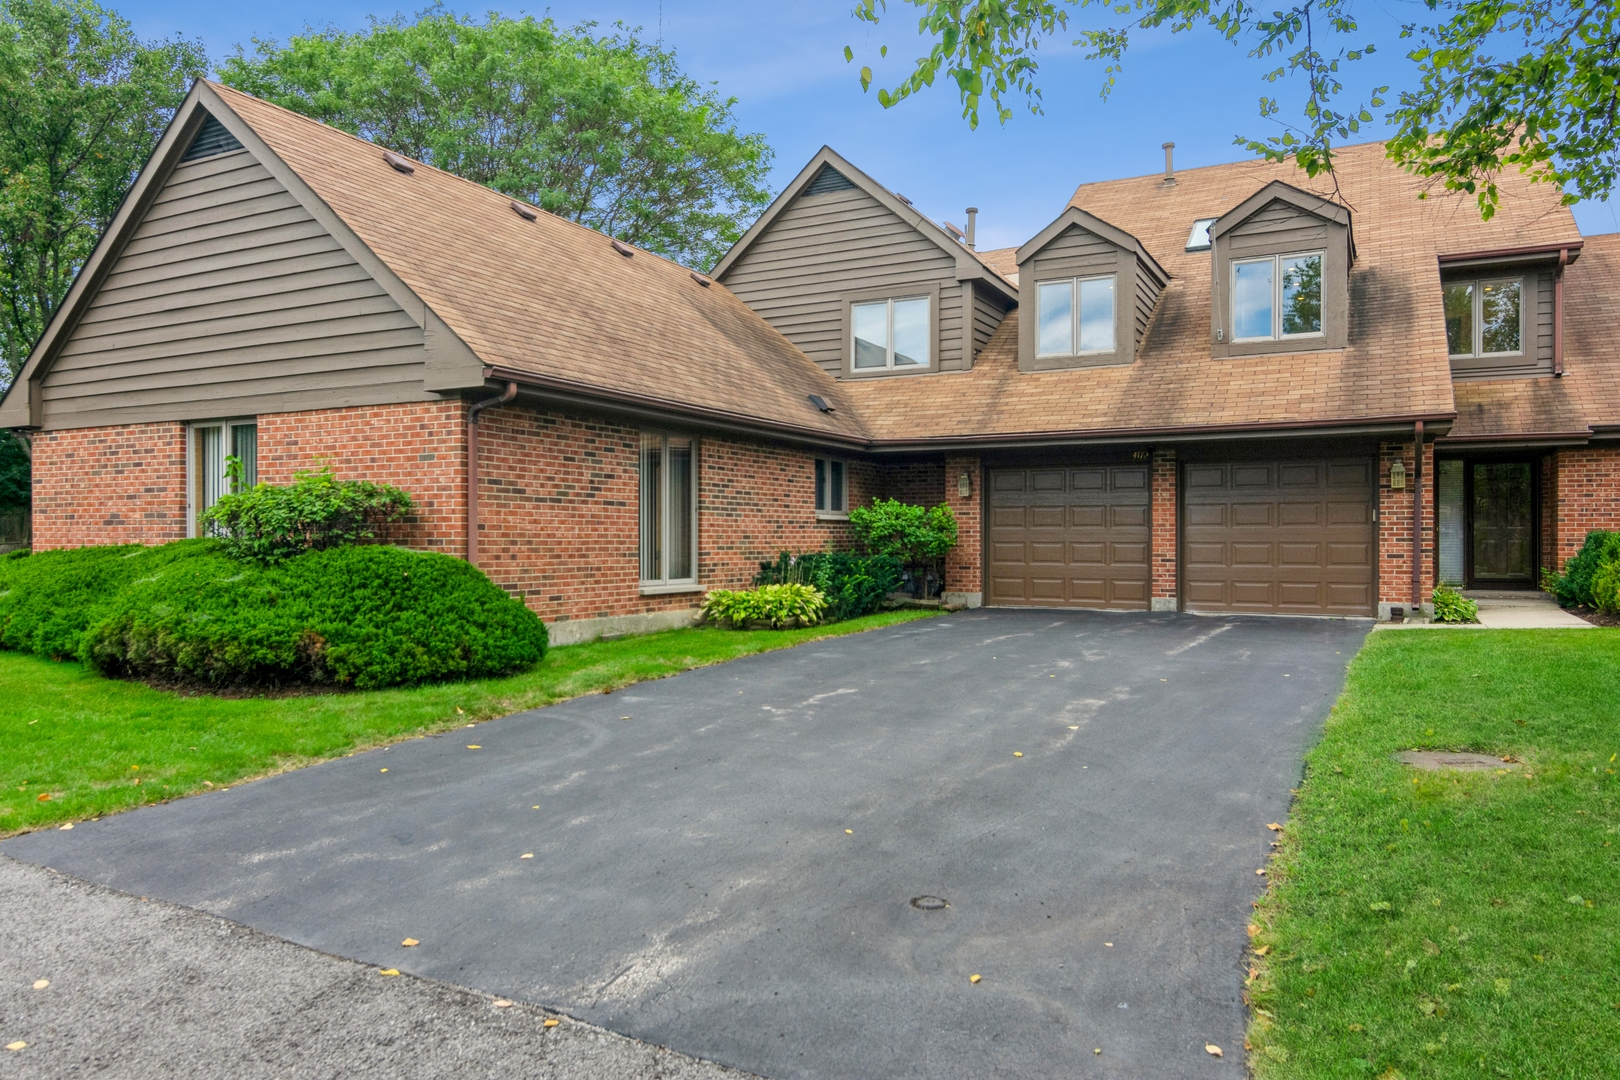 4172 picardy Drive, Northbrook, IL 60062